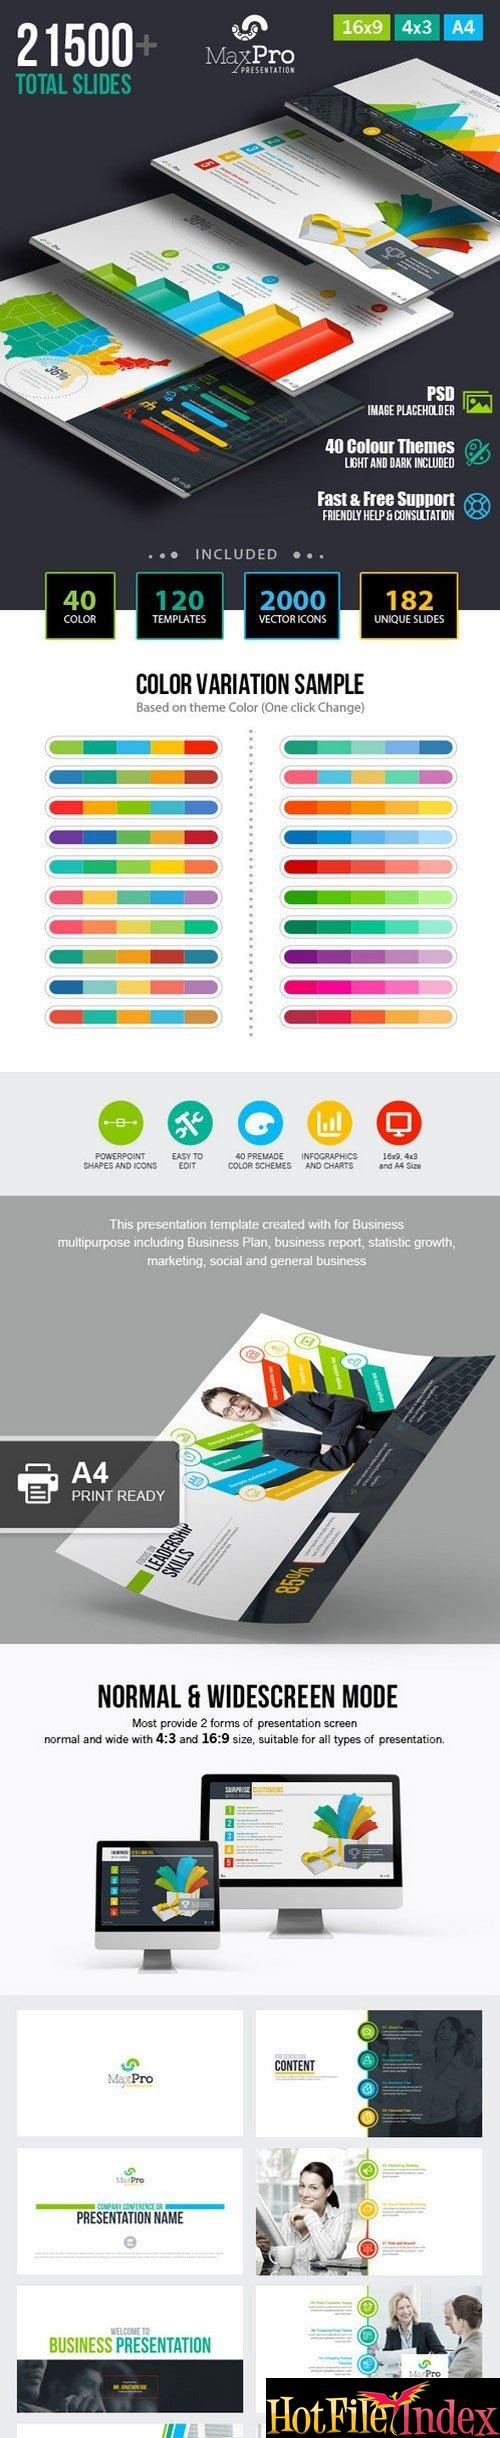 maxpro - business plan powerpoint presentation - graphicriver